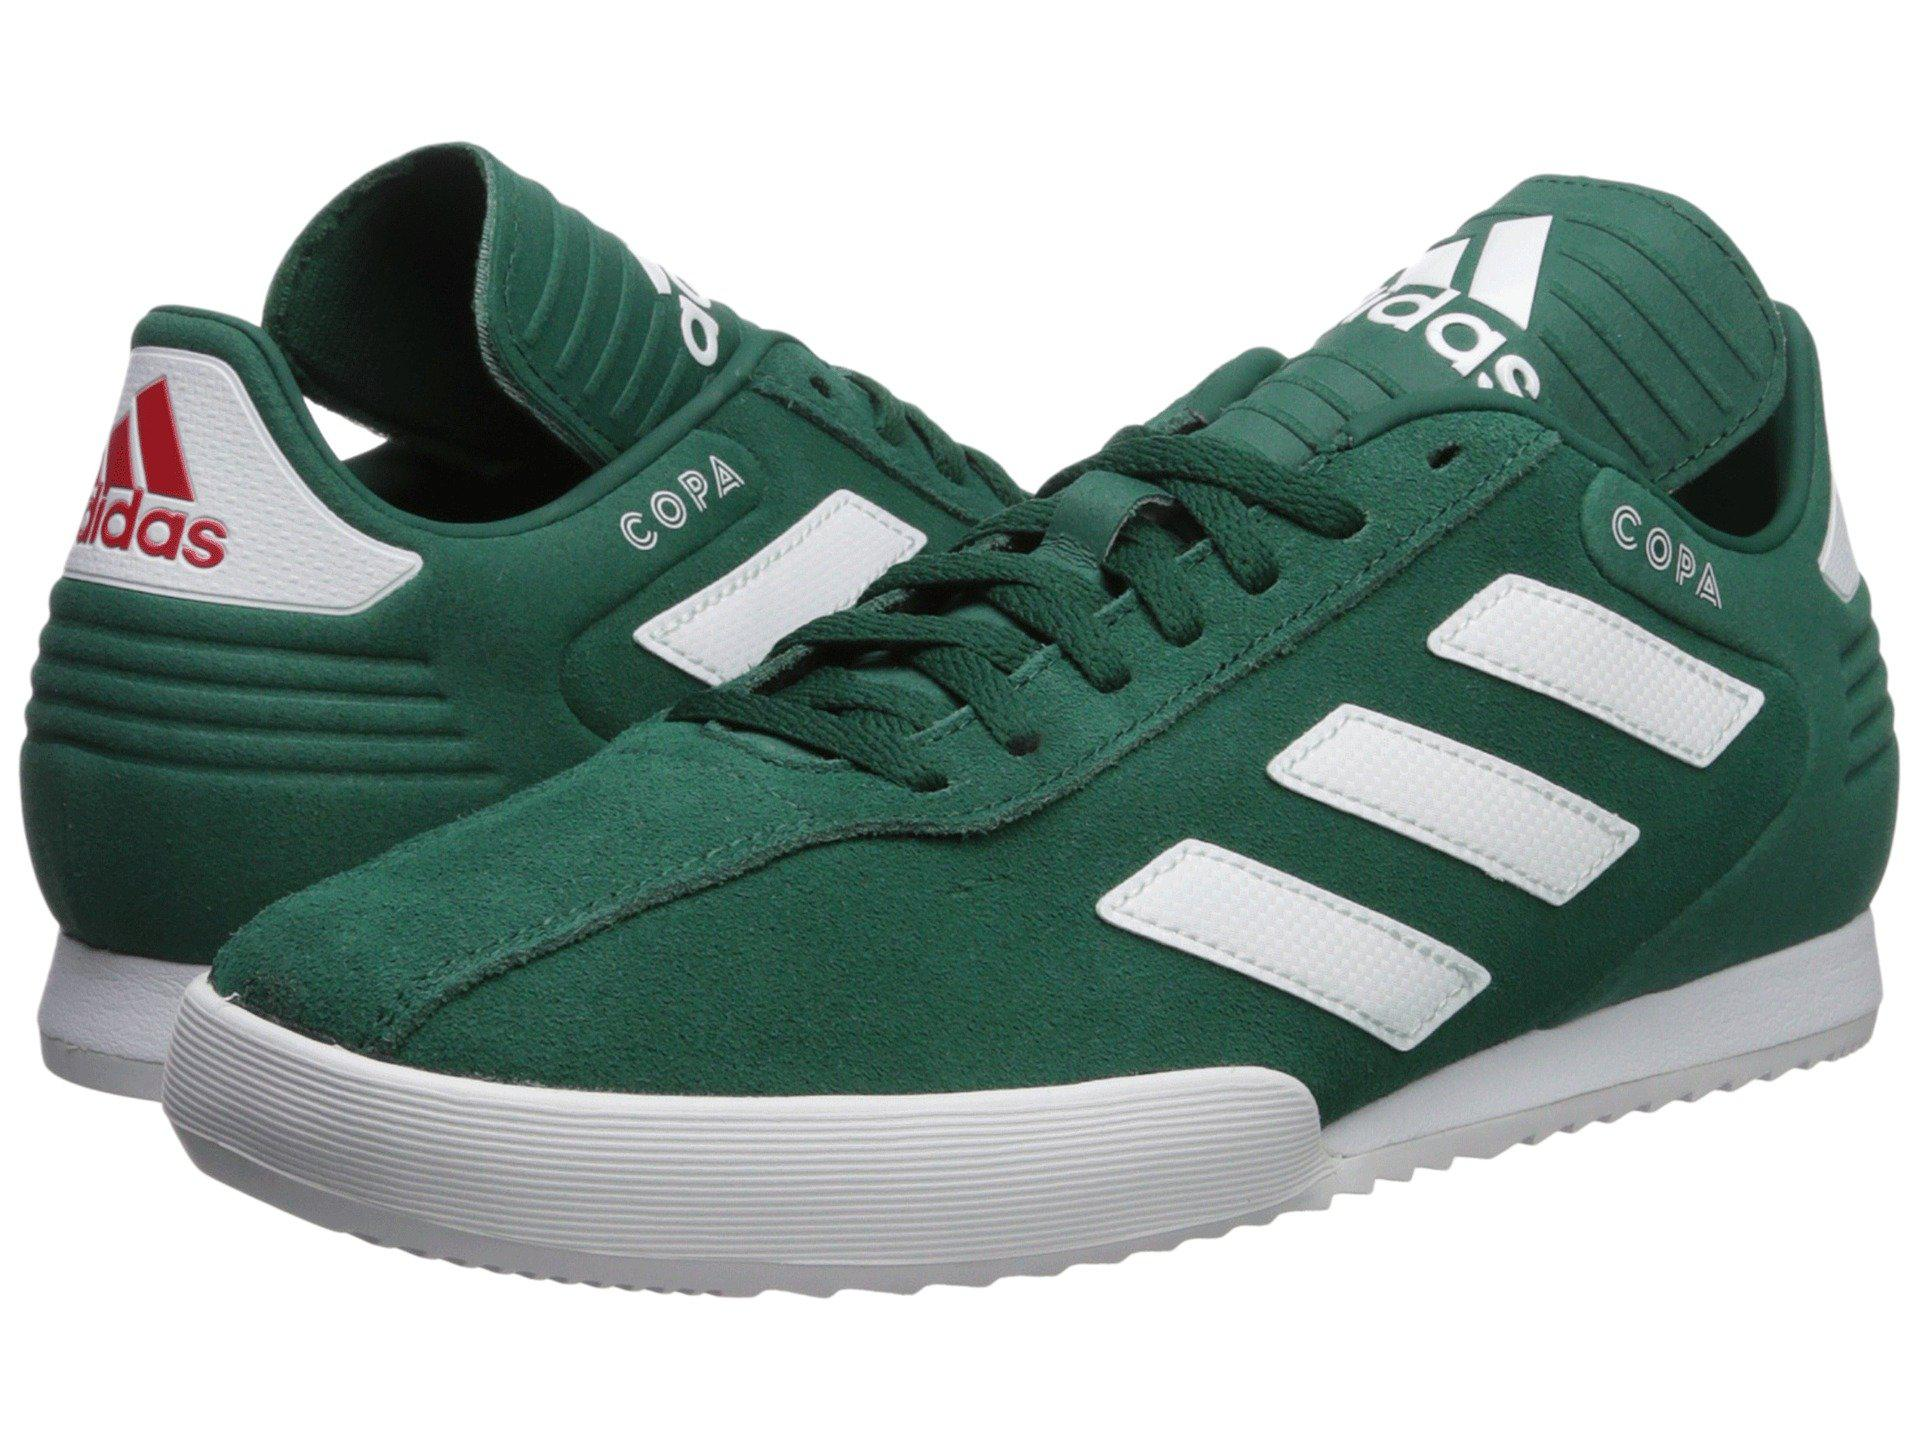 076d9ad526 Lyst - adidas Copa Super - Country Pack (green/white/scarlet) Men's ...